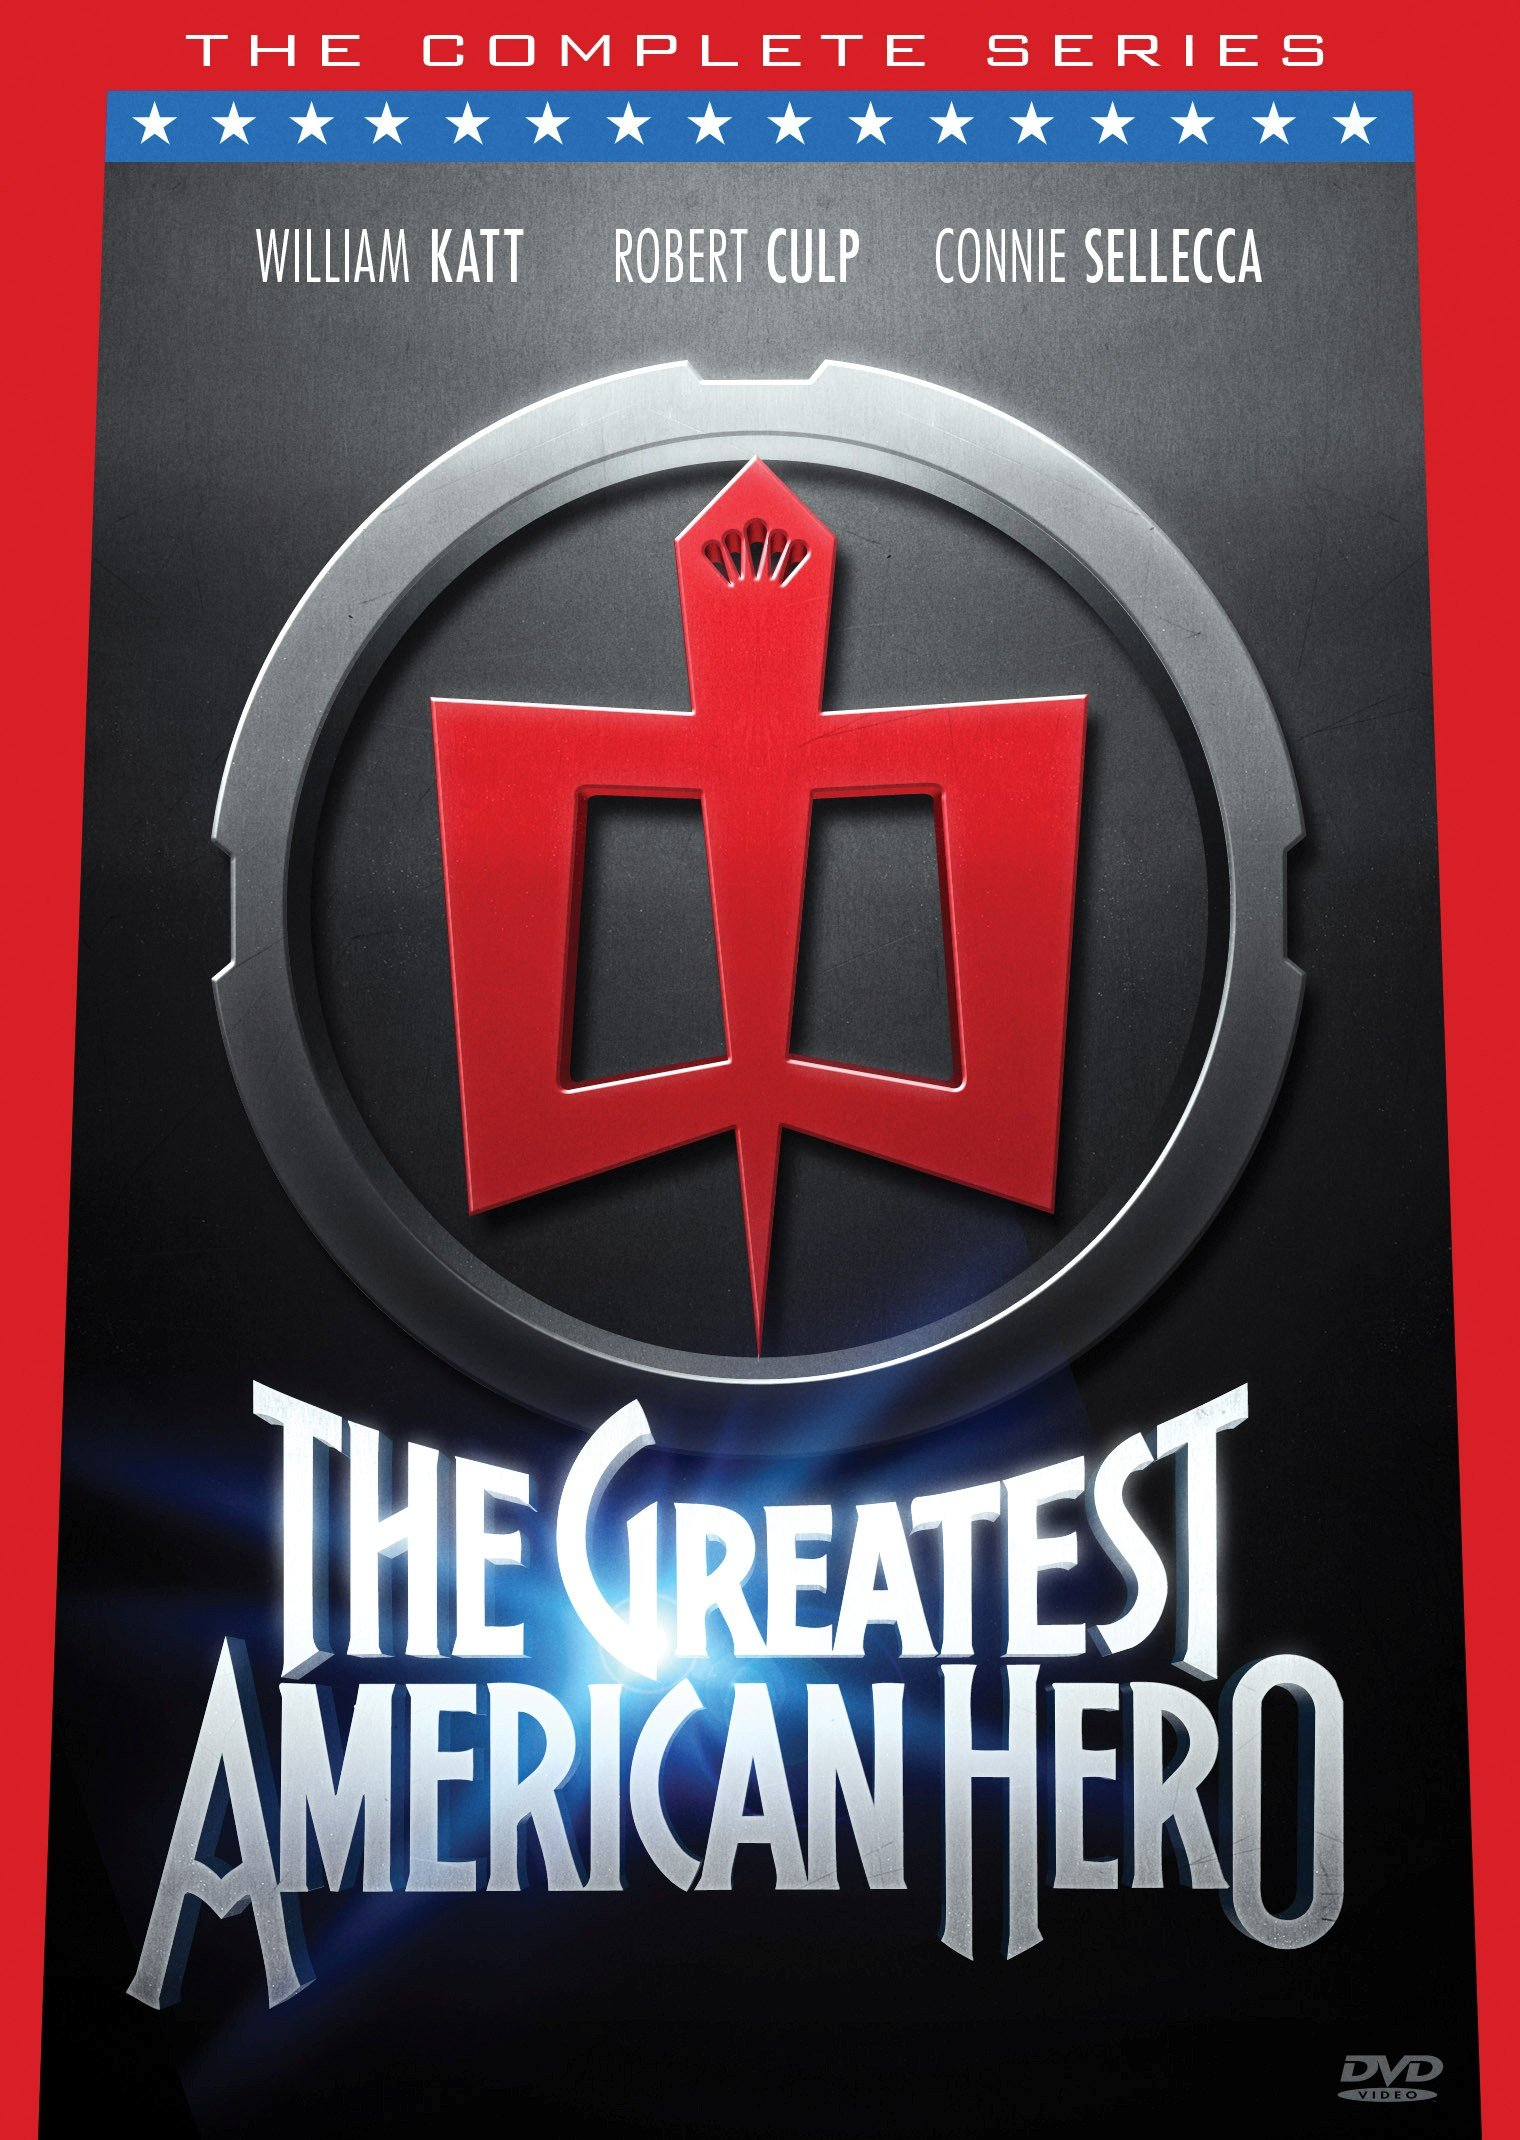 The Greatest American Hero: The Complete Series by Digital1stop